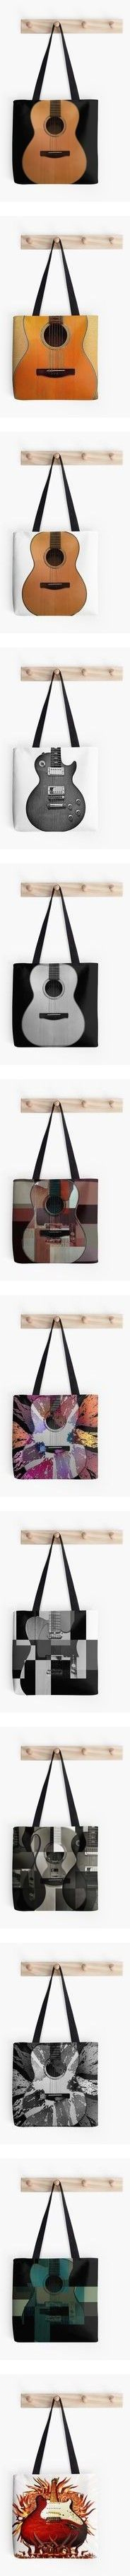 Guitar Totes by Eric Rasmussen by christy-leigh-1 on Polyvore featuring totes, home, home decor, wall art, photography wall art, metal posters, galaxy poster, photography posters, metal wall art and bags